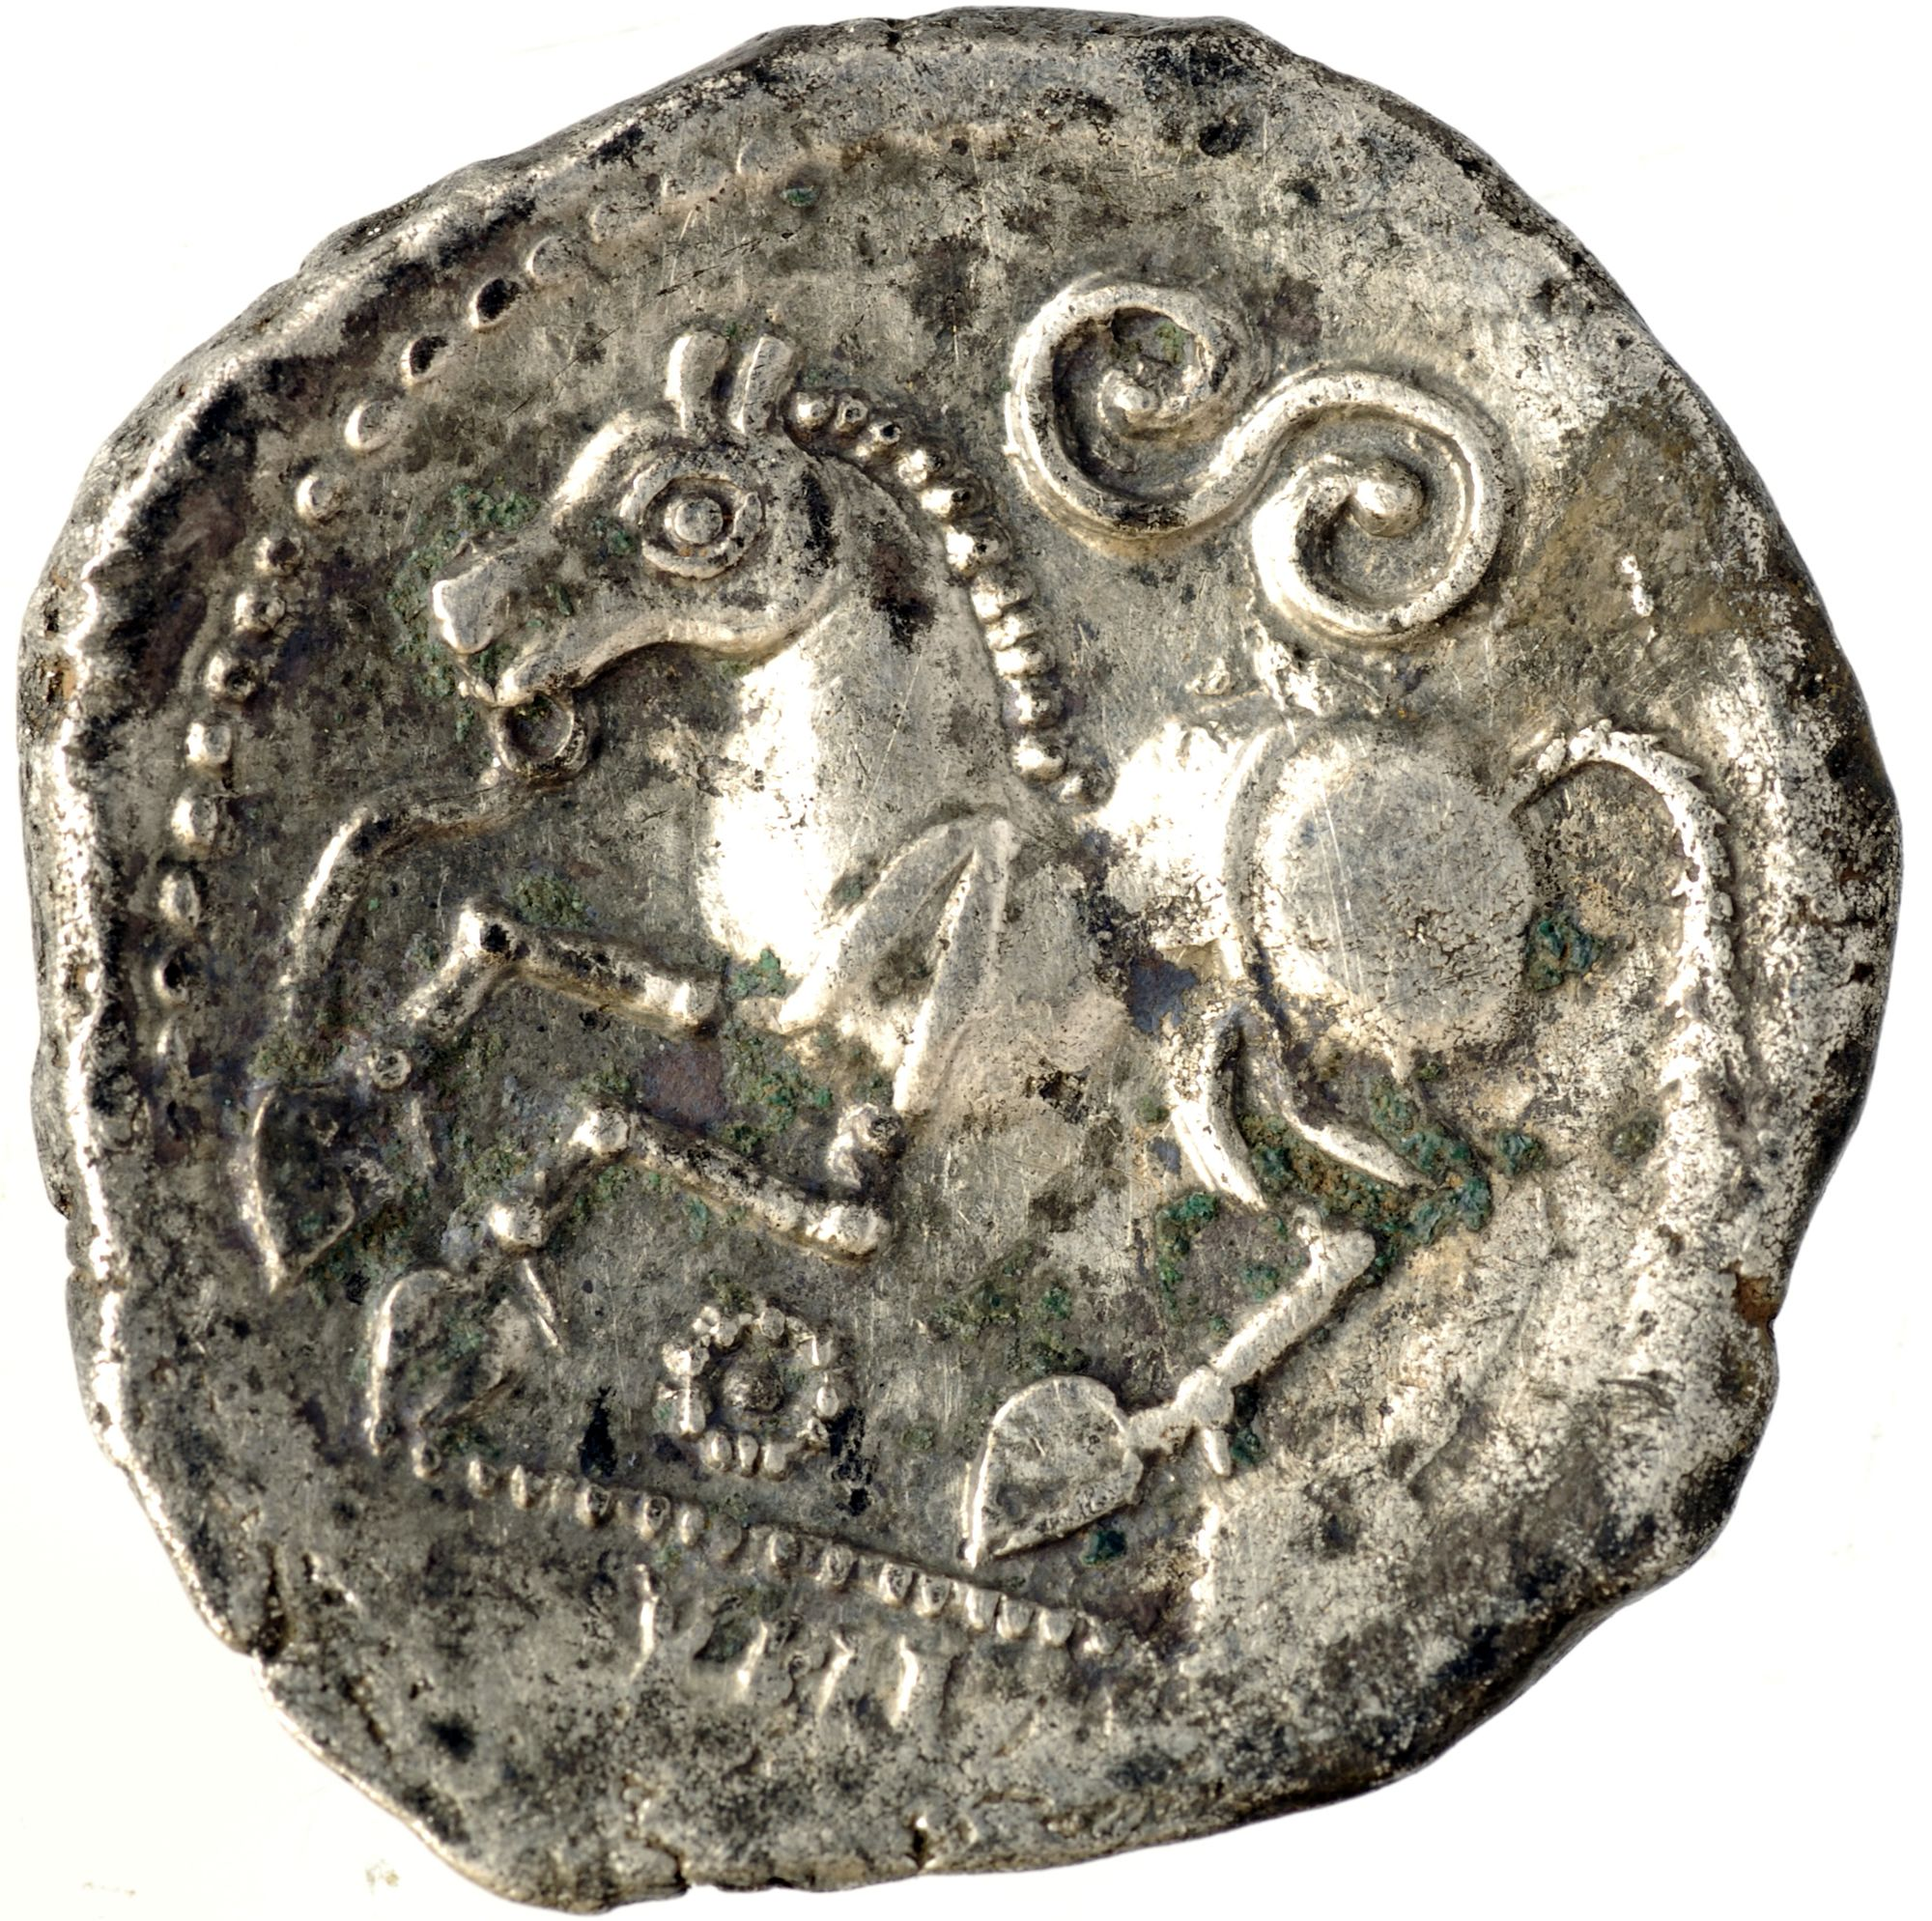 Gallic silver coin with traditional Celtic horse and serpent iconography